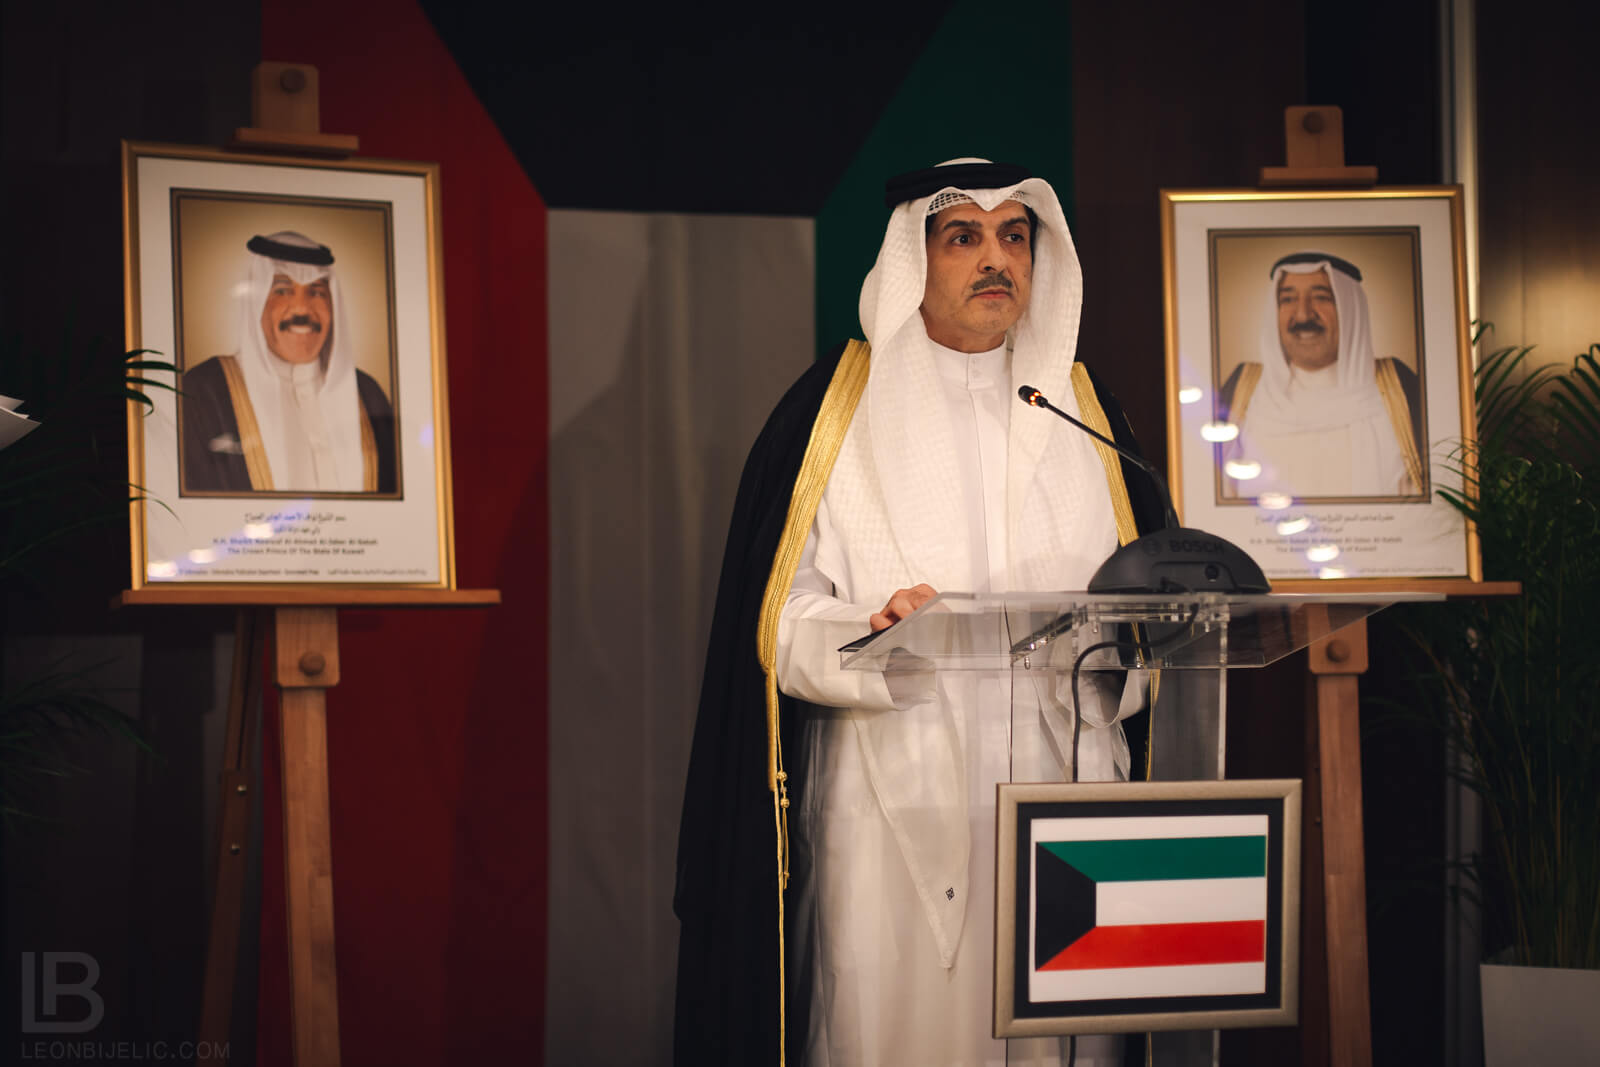 EMBASSY OF KUWAIT CELEBRATED 56. ANNIVERSARY OF INDEPENDENCE